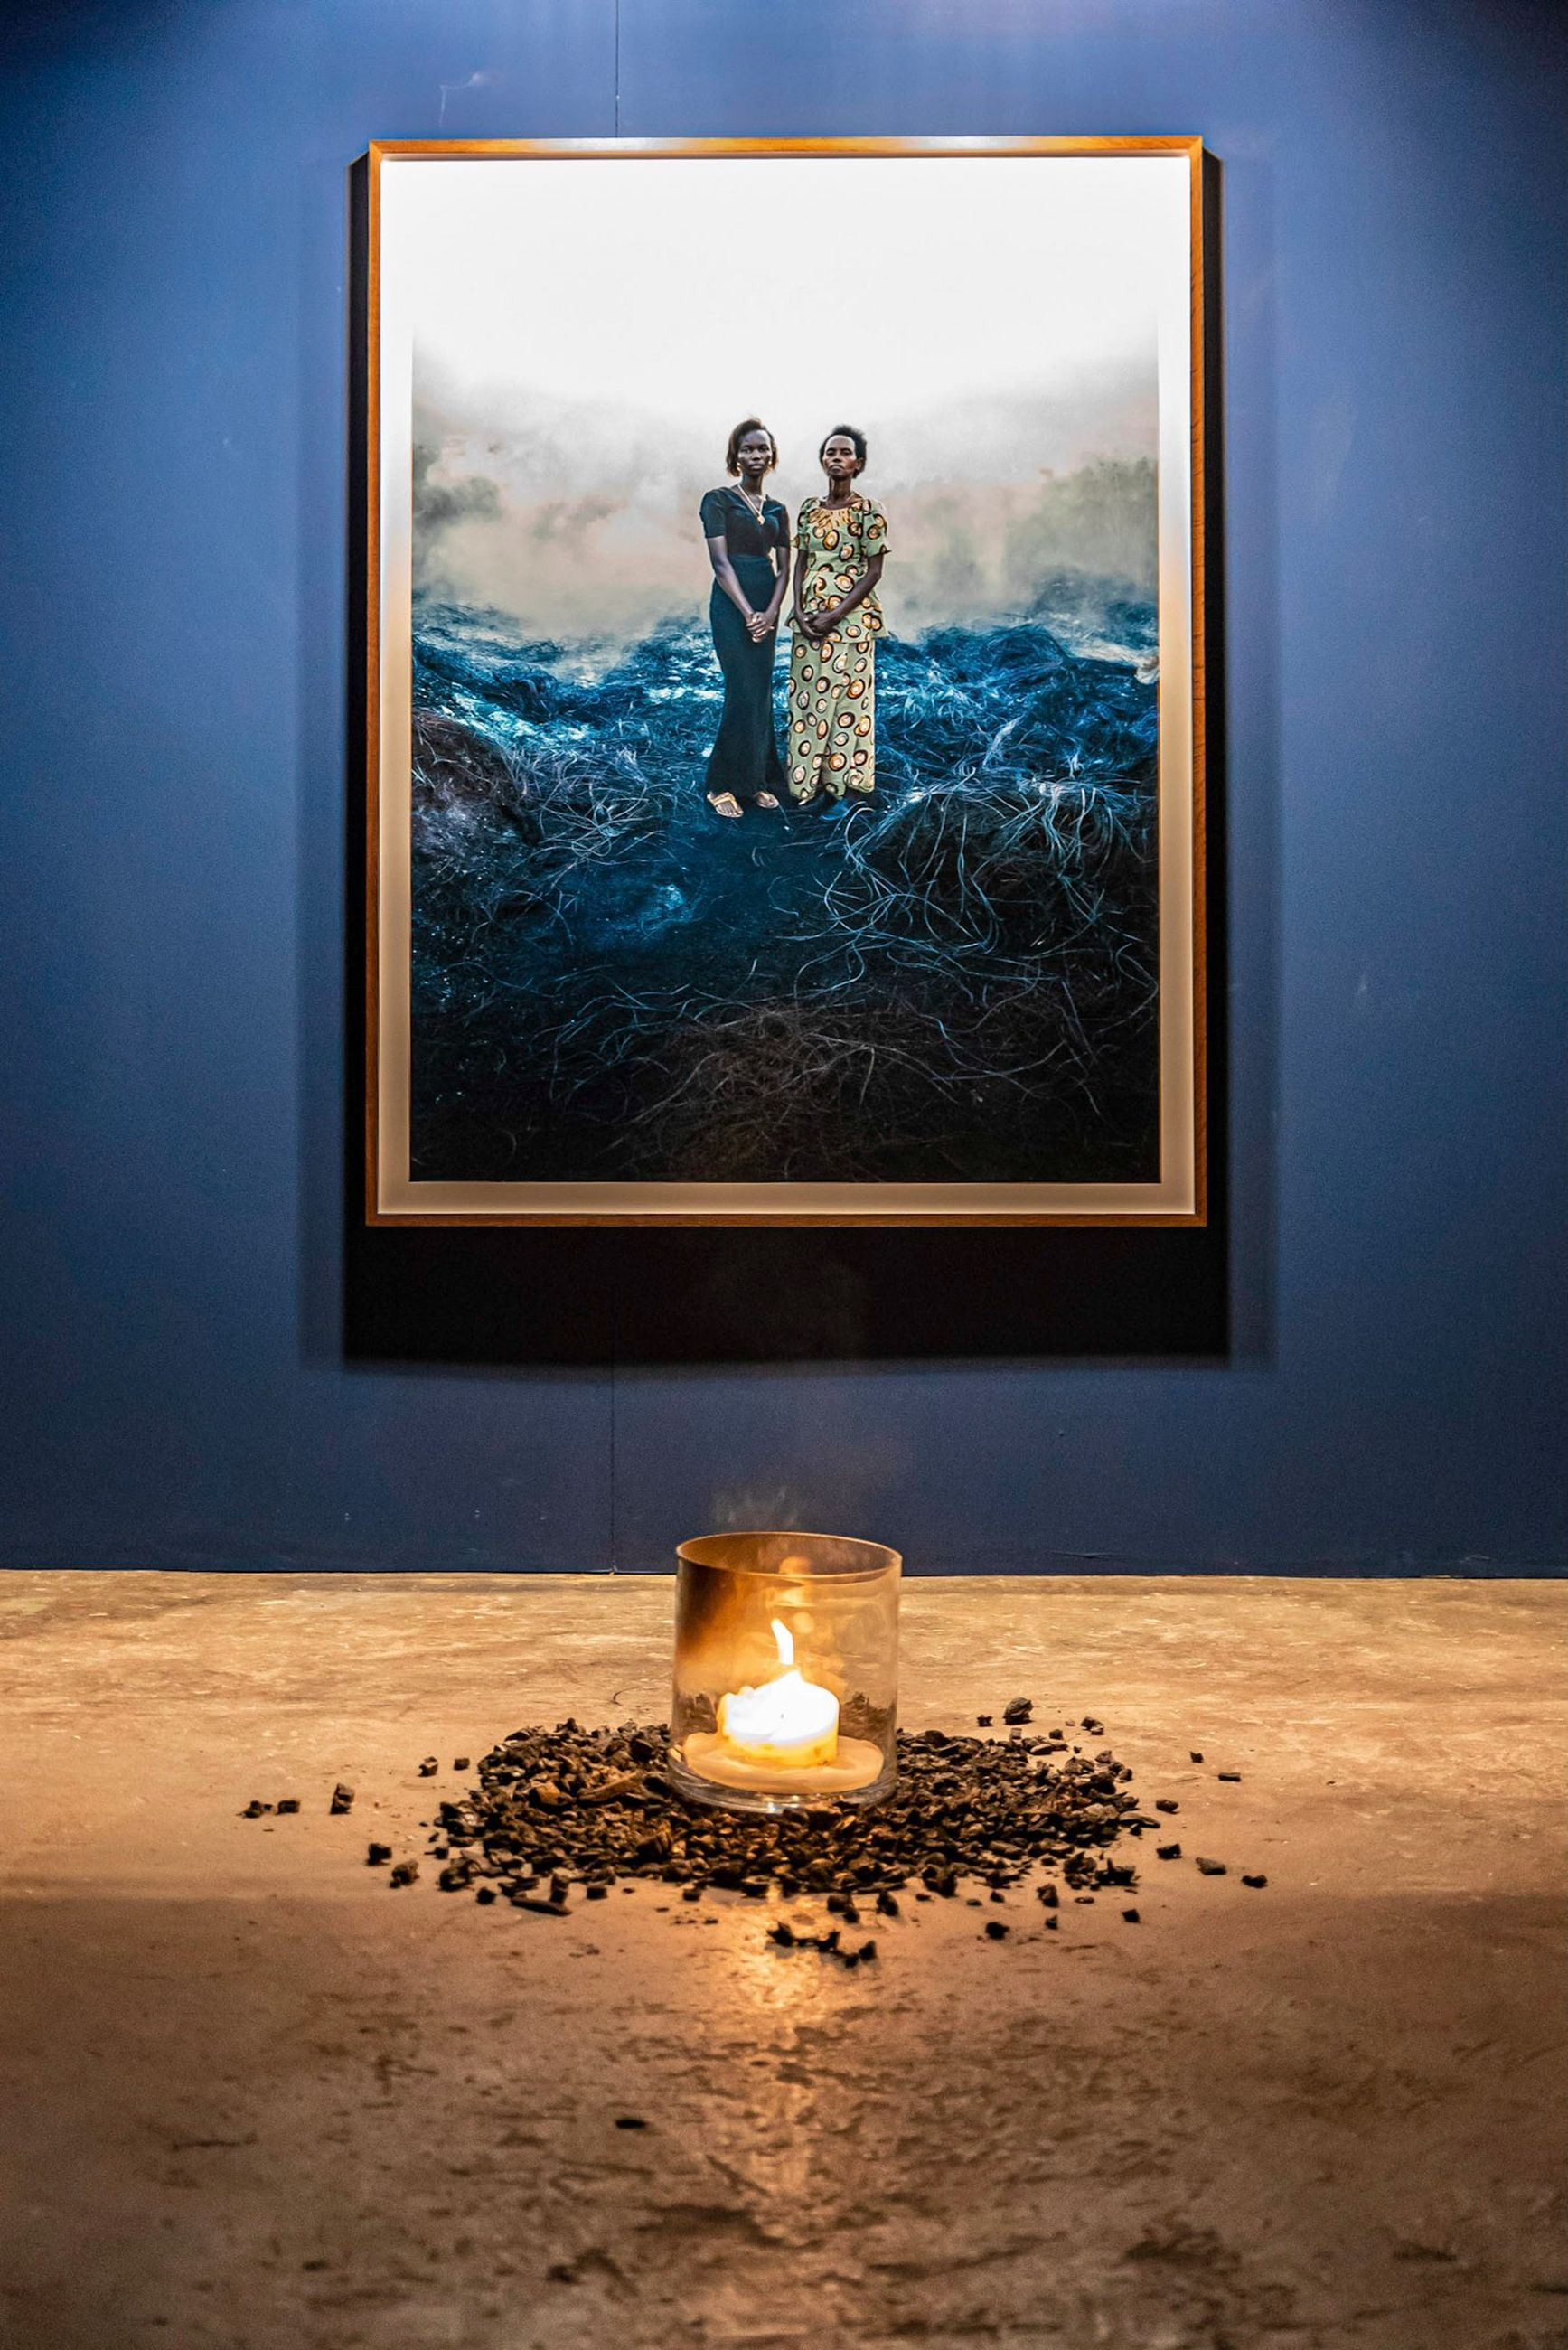 candle, nature, indoors, illuminated, human representation, flame, plant, female likeness, fire, glowing, burning, representation, table, lighting equipment, window, people, fire - natural phenomenon, transparent, tree, electric lamp